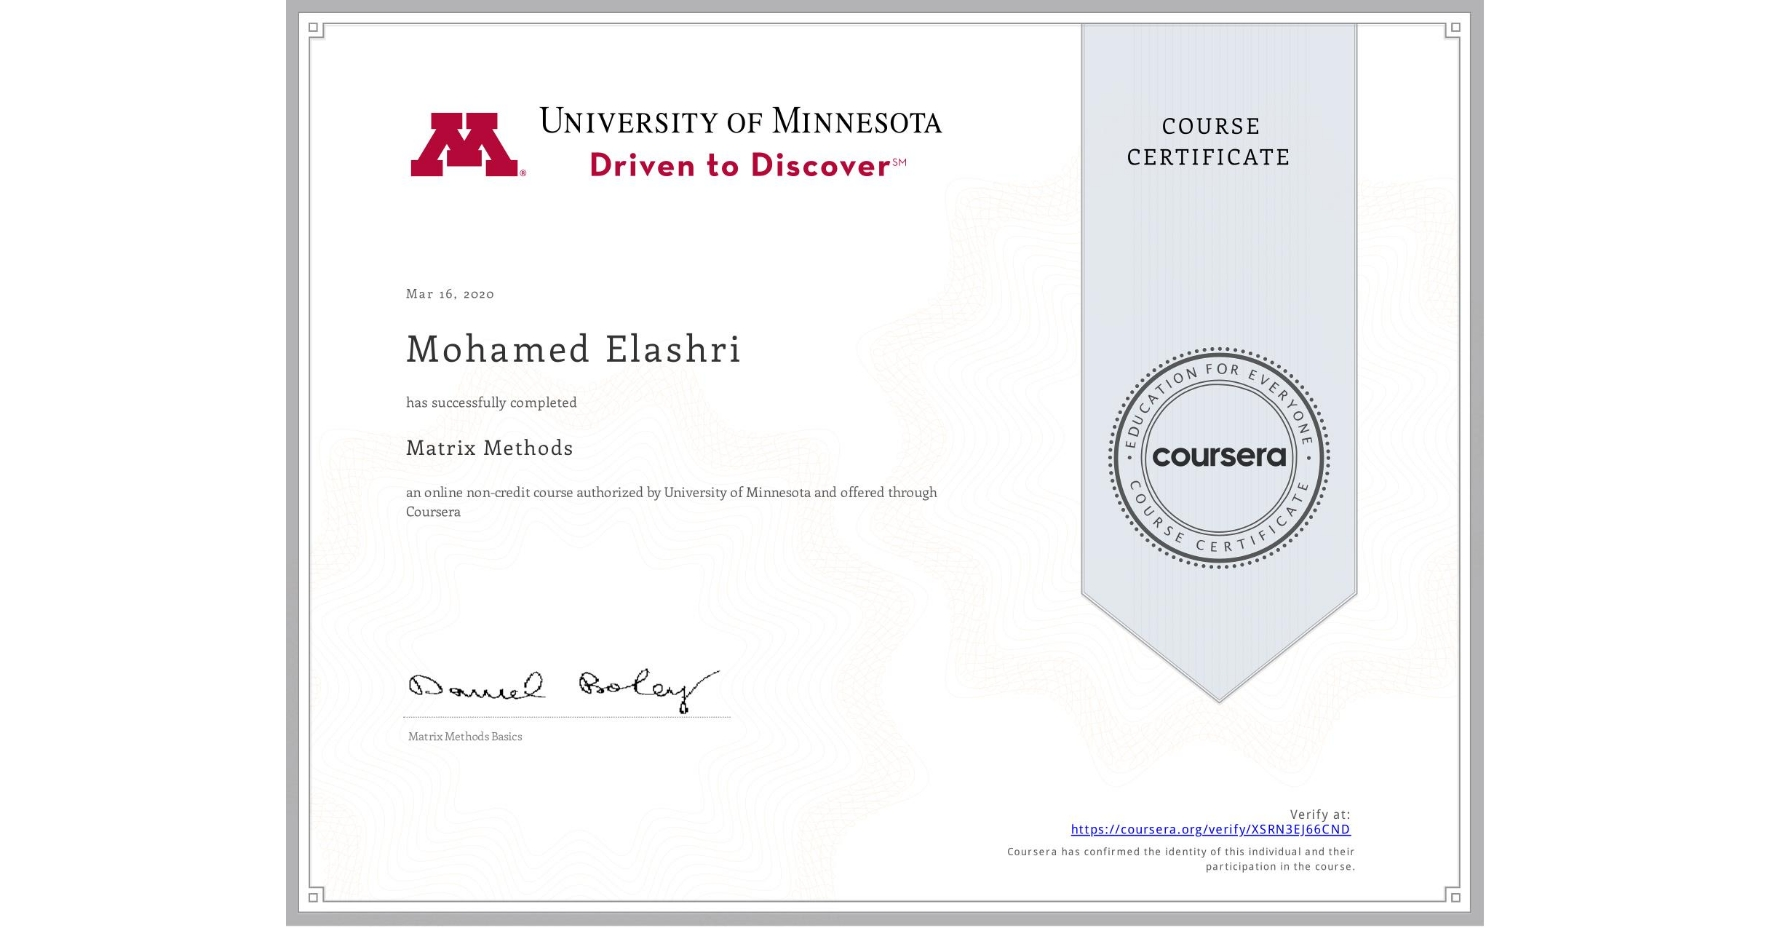 View certificate for Mohamed Elashri, Matrix Methods, an online non-credit course authorized by University of Minnesota and offered through Coursera